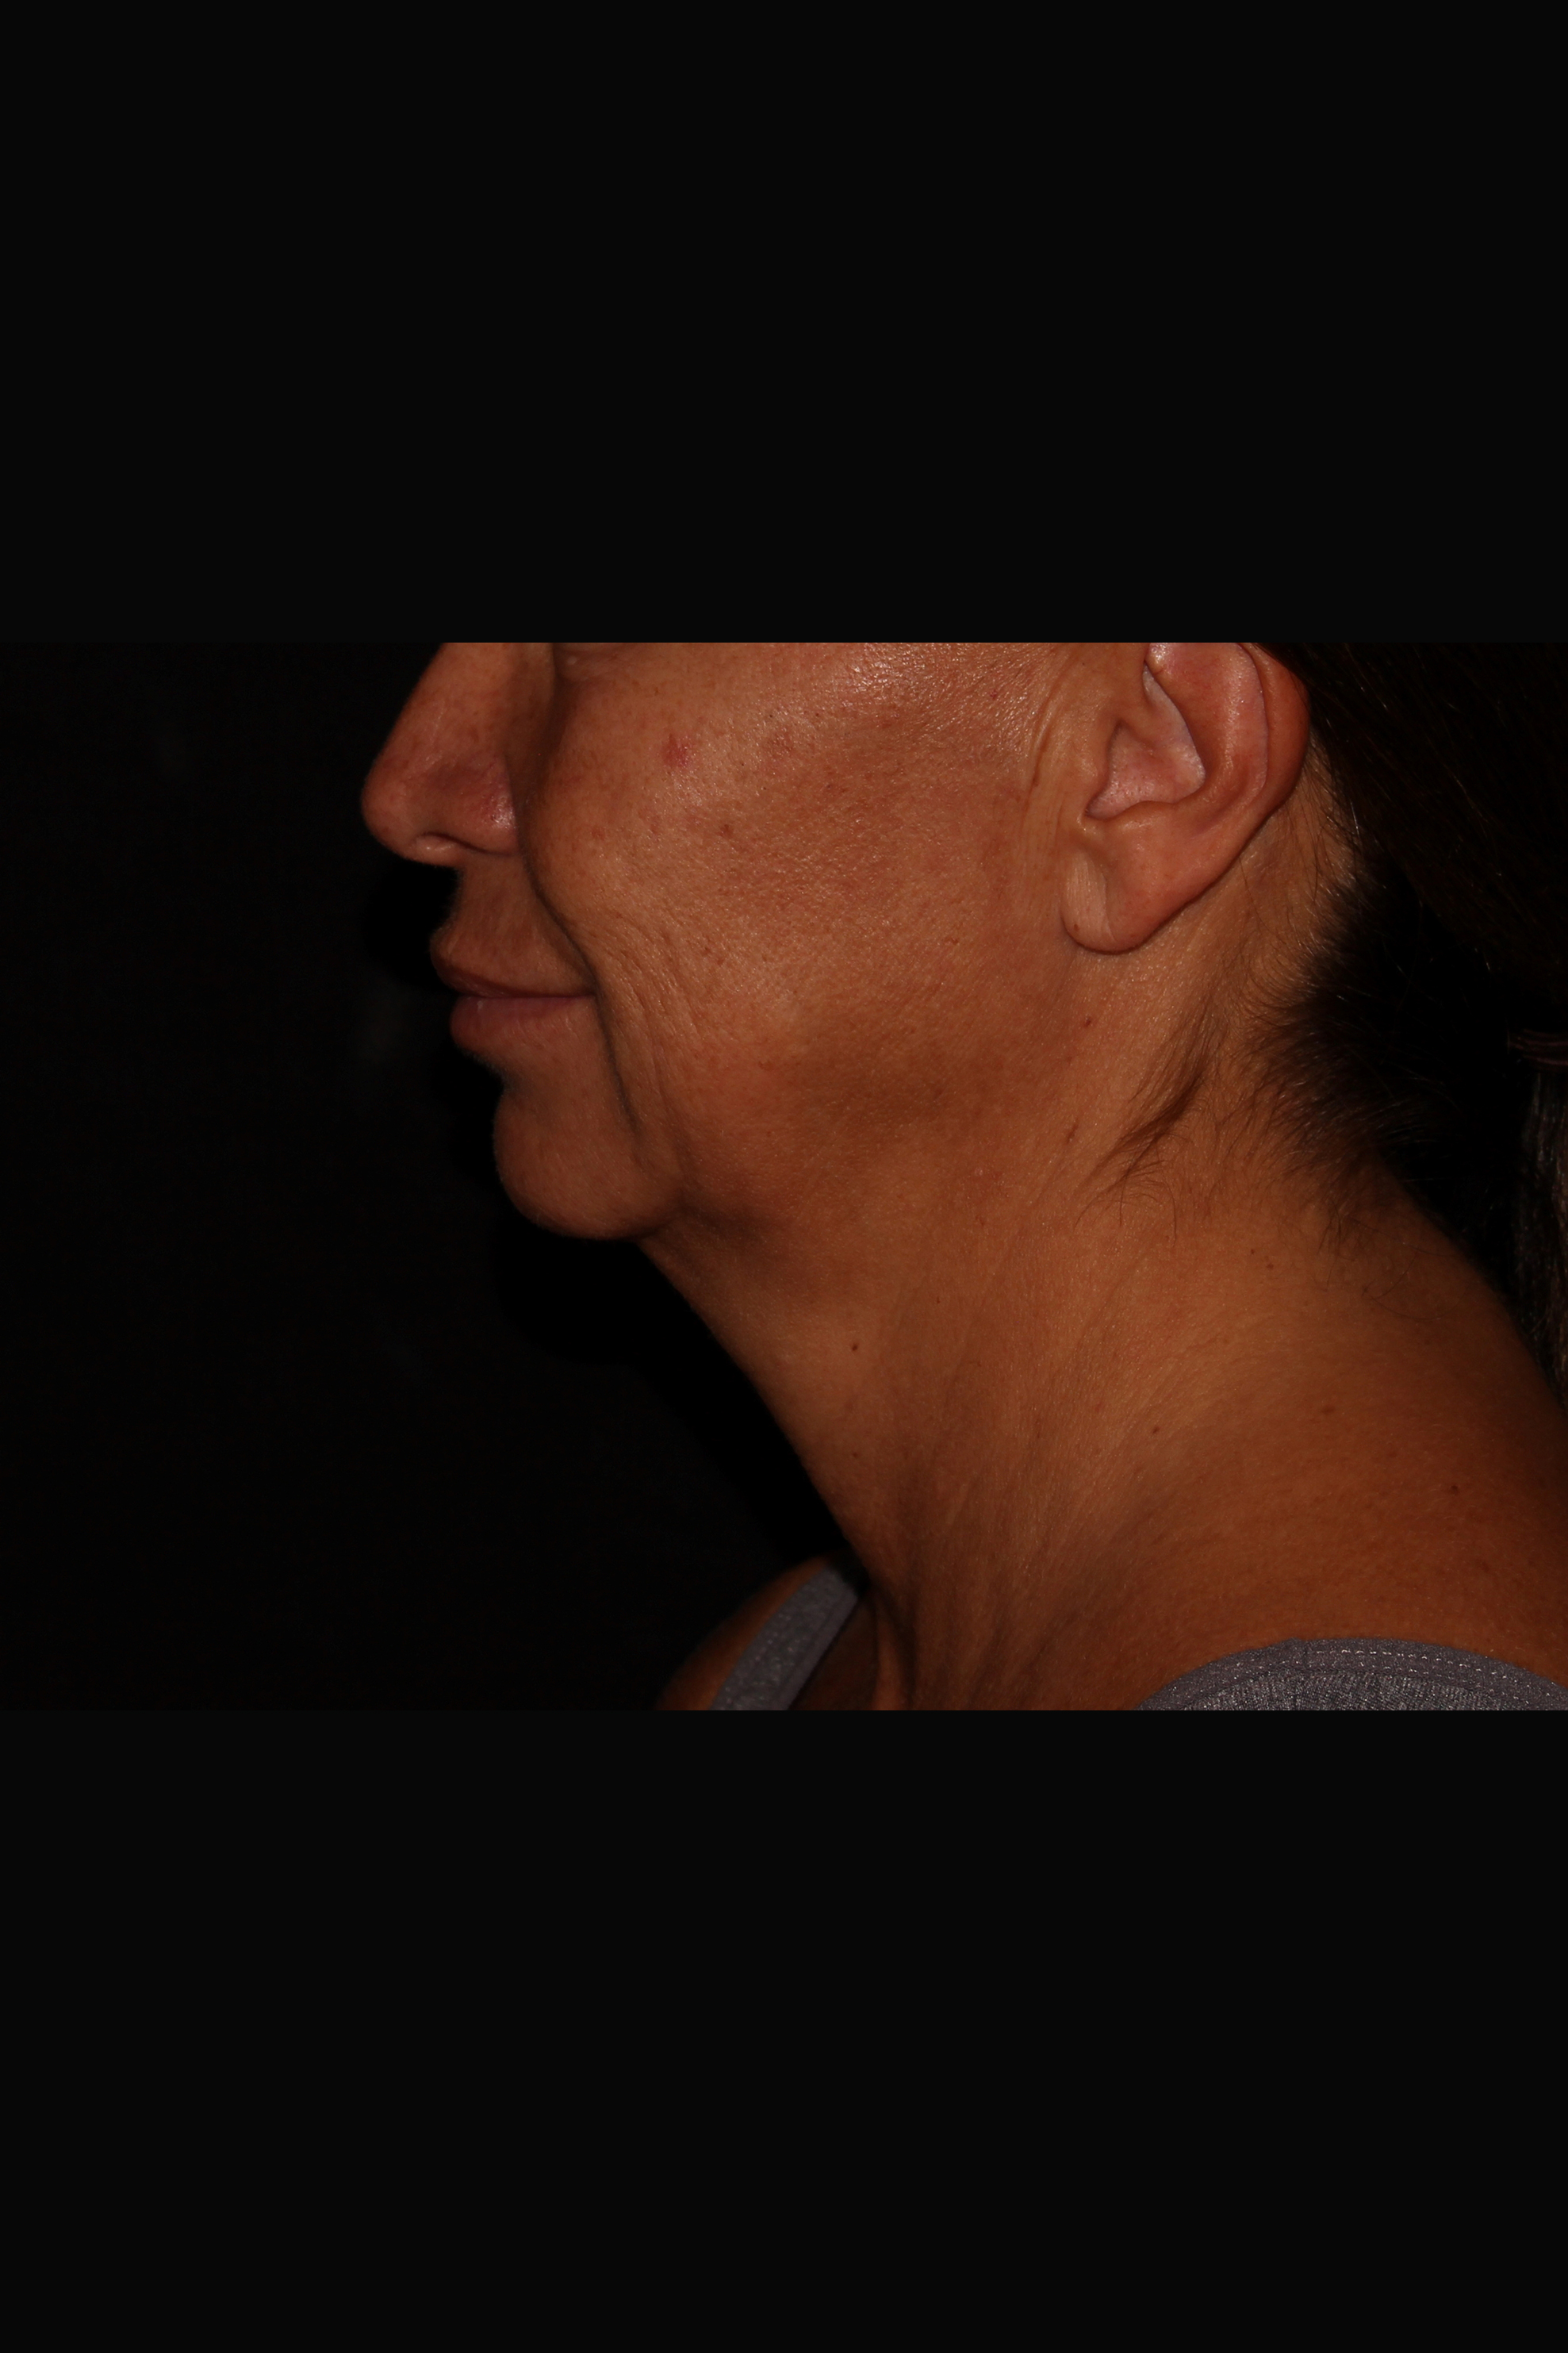 Before Neck Liposuction - Side